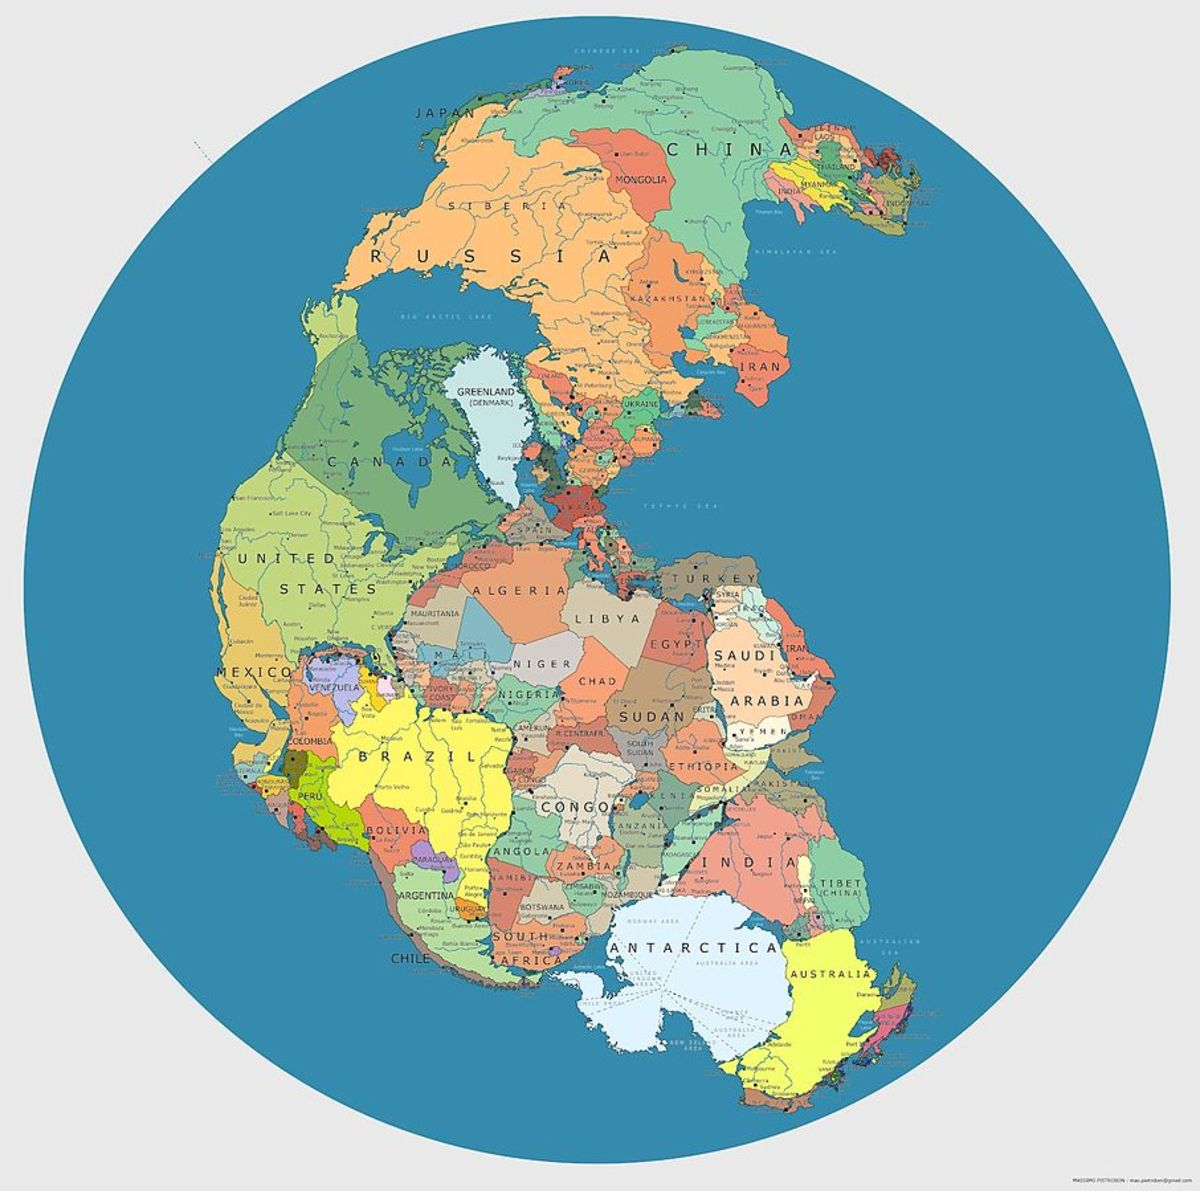 Pangaea by national boundaries.